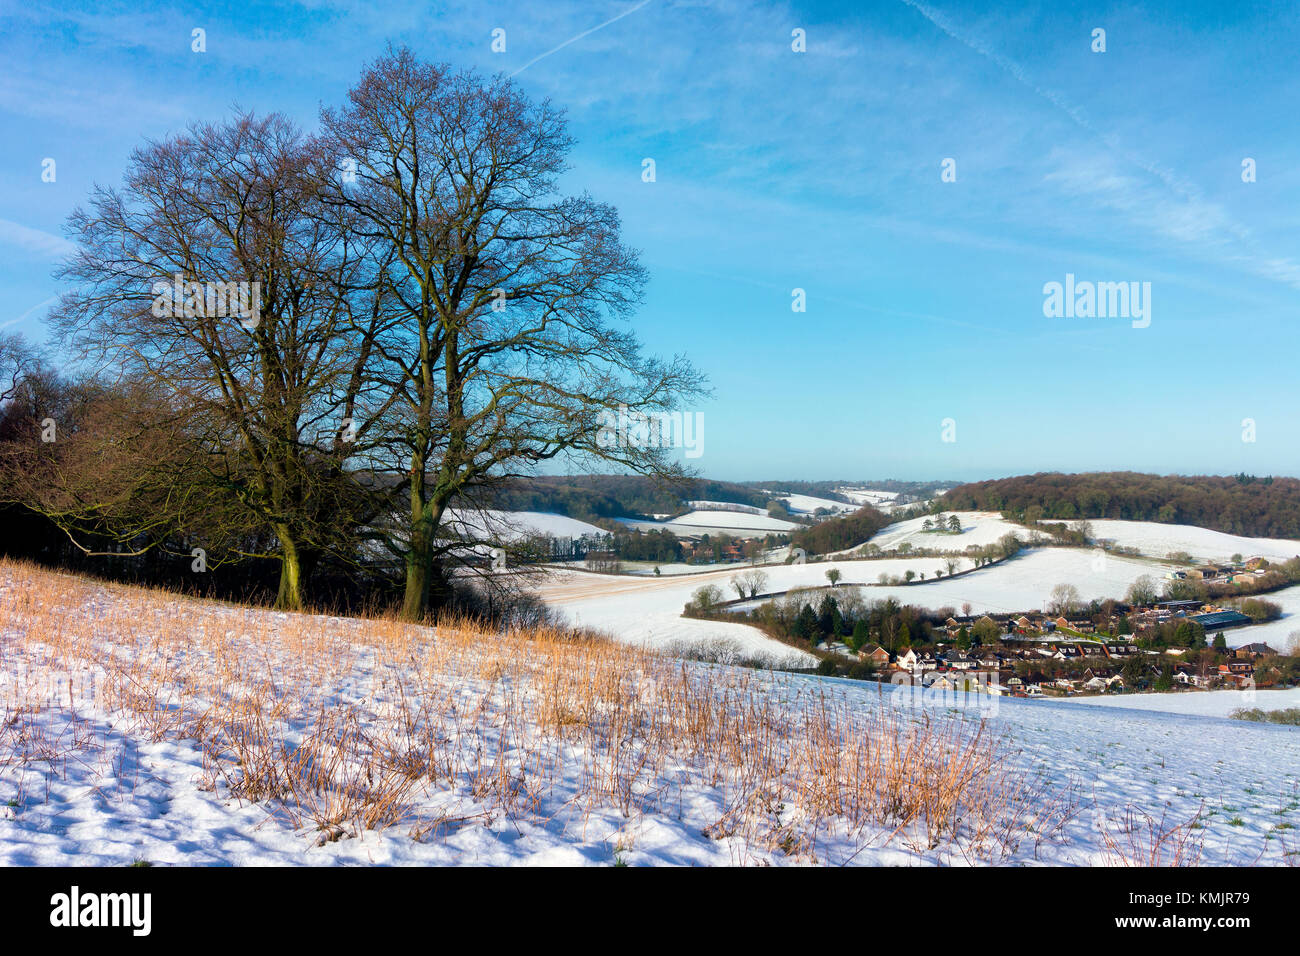 North Dean winter view in the Chilterns, Buckinghamshire, England - Stock Image